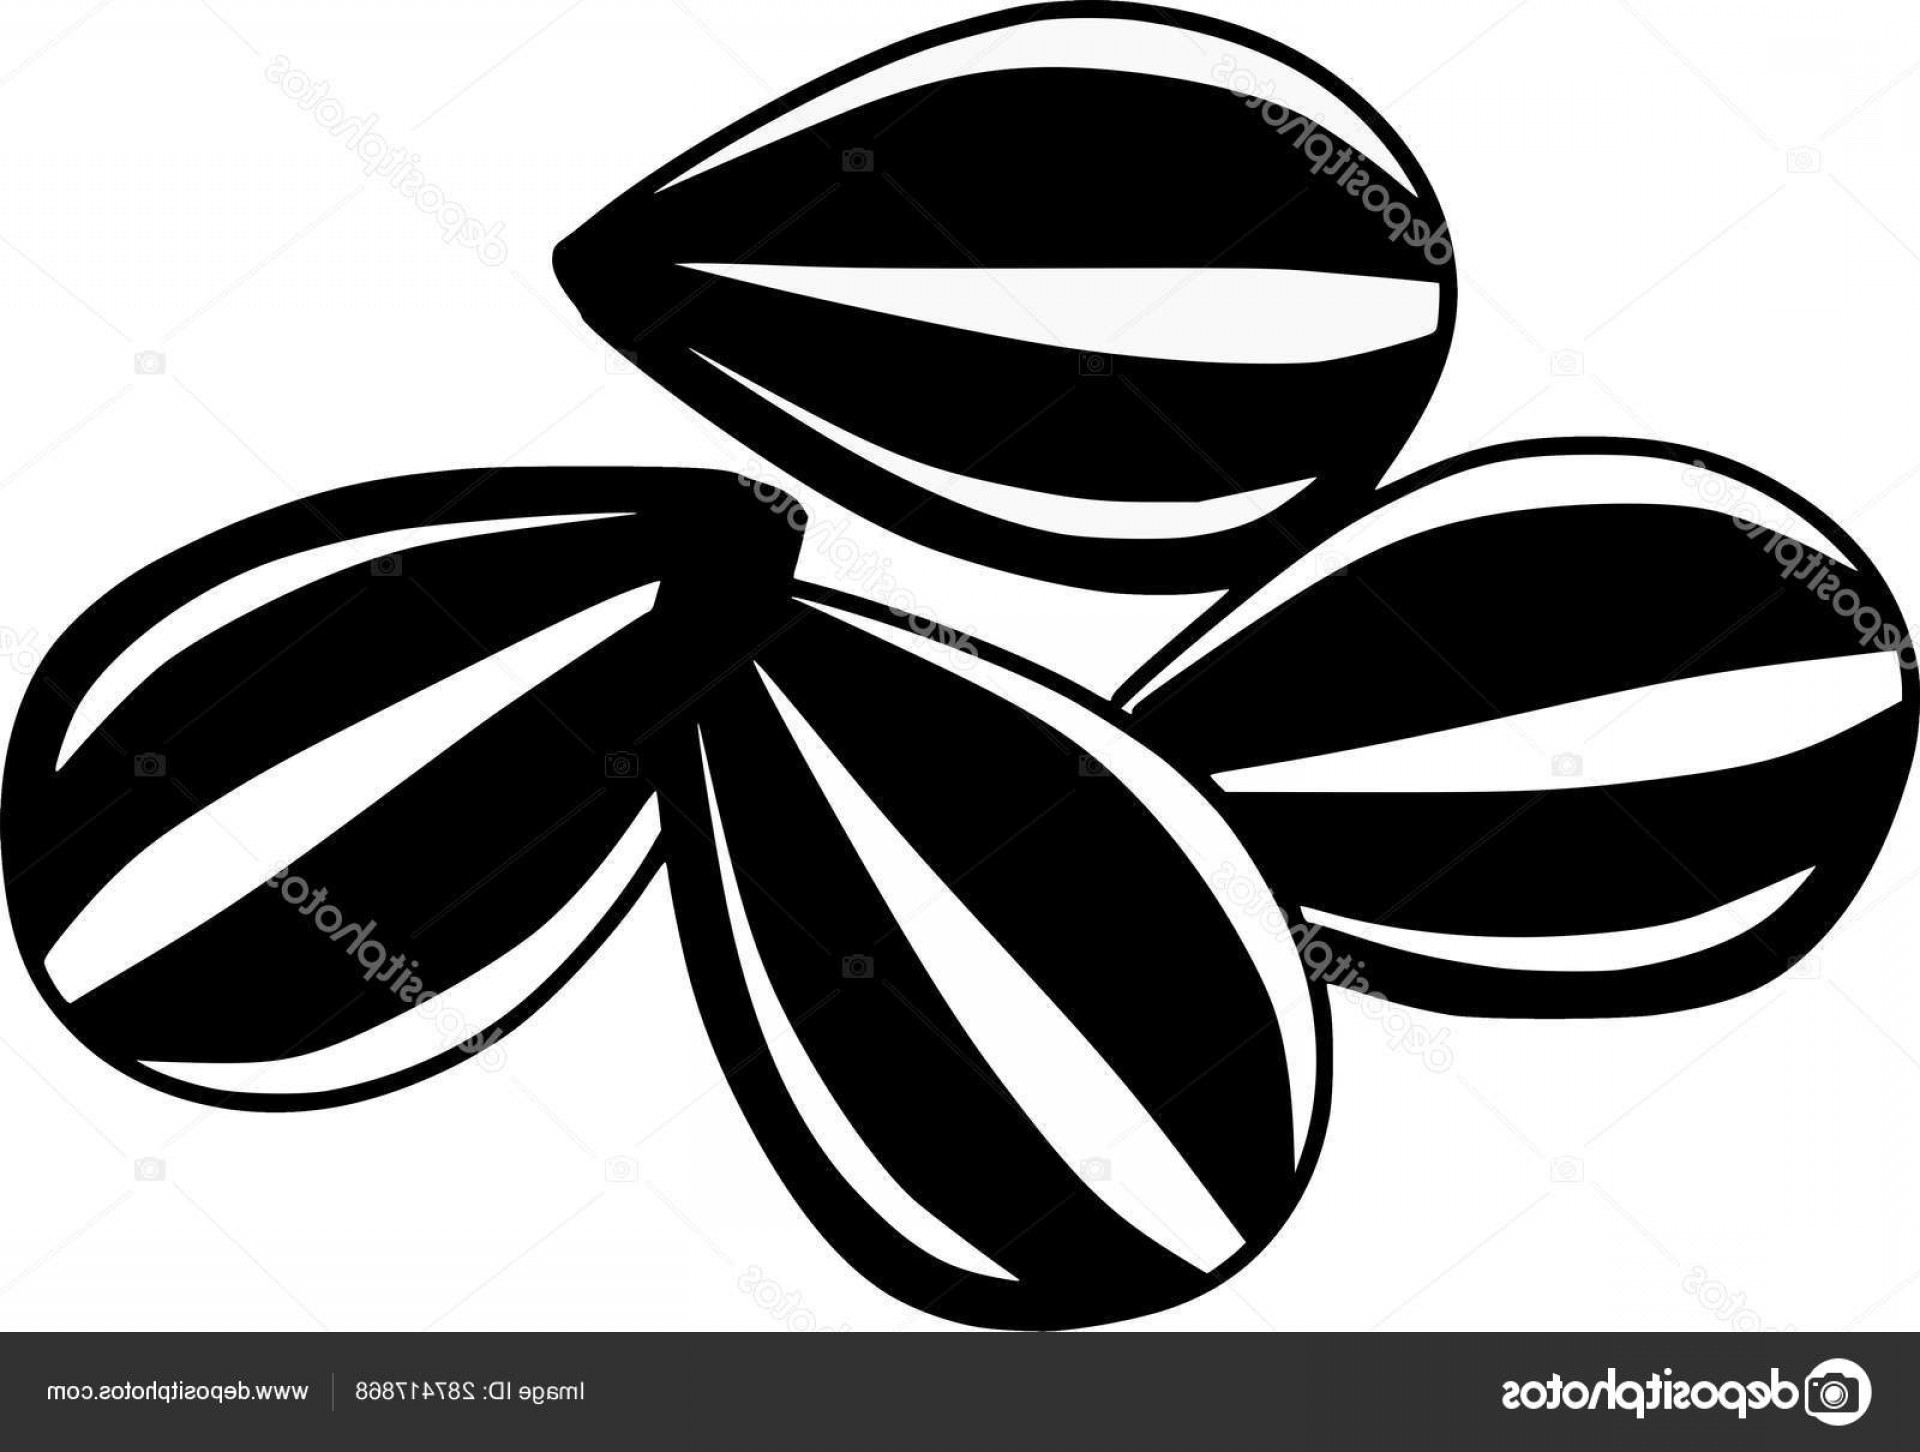 Vector Black And White Sunflower Seed: Stock Illustration Sunflower Seeds Vector Food Illustrations